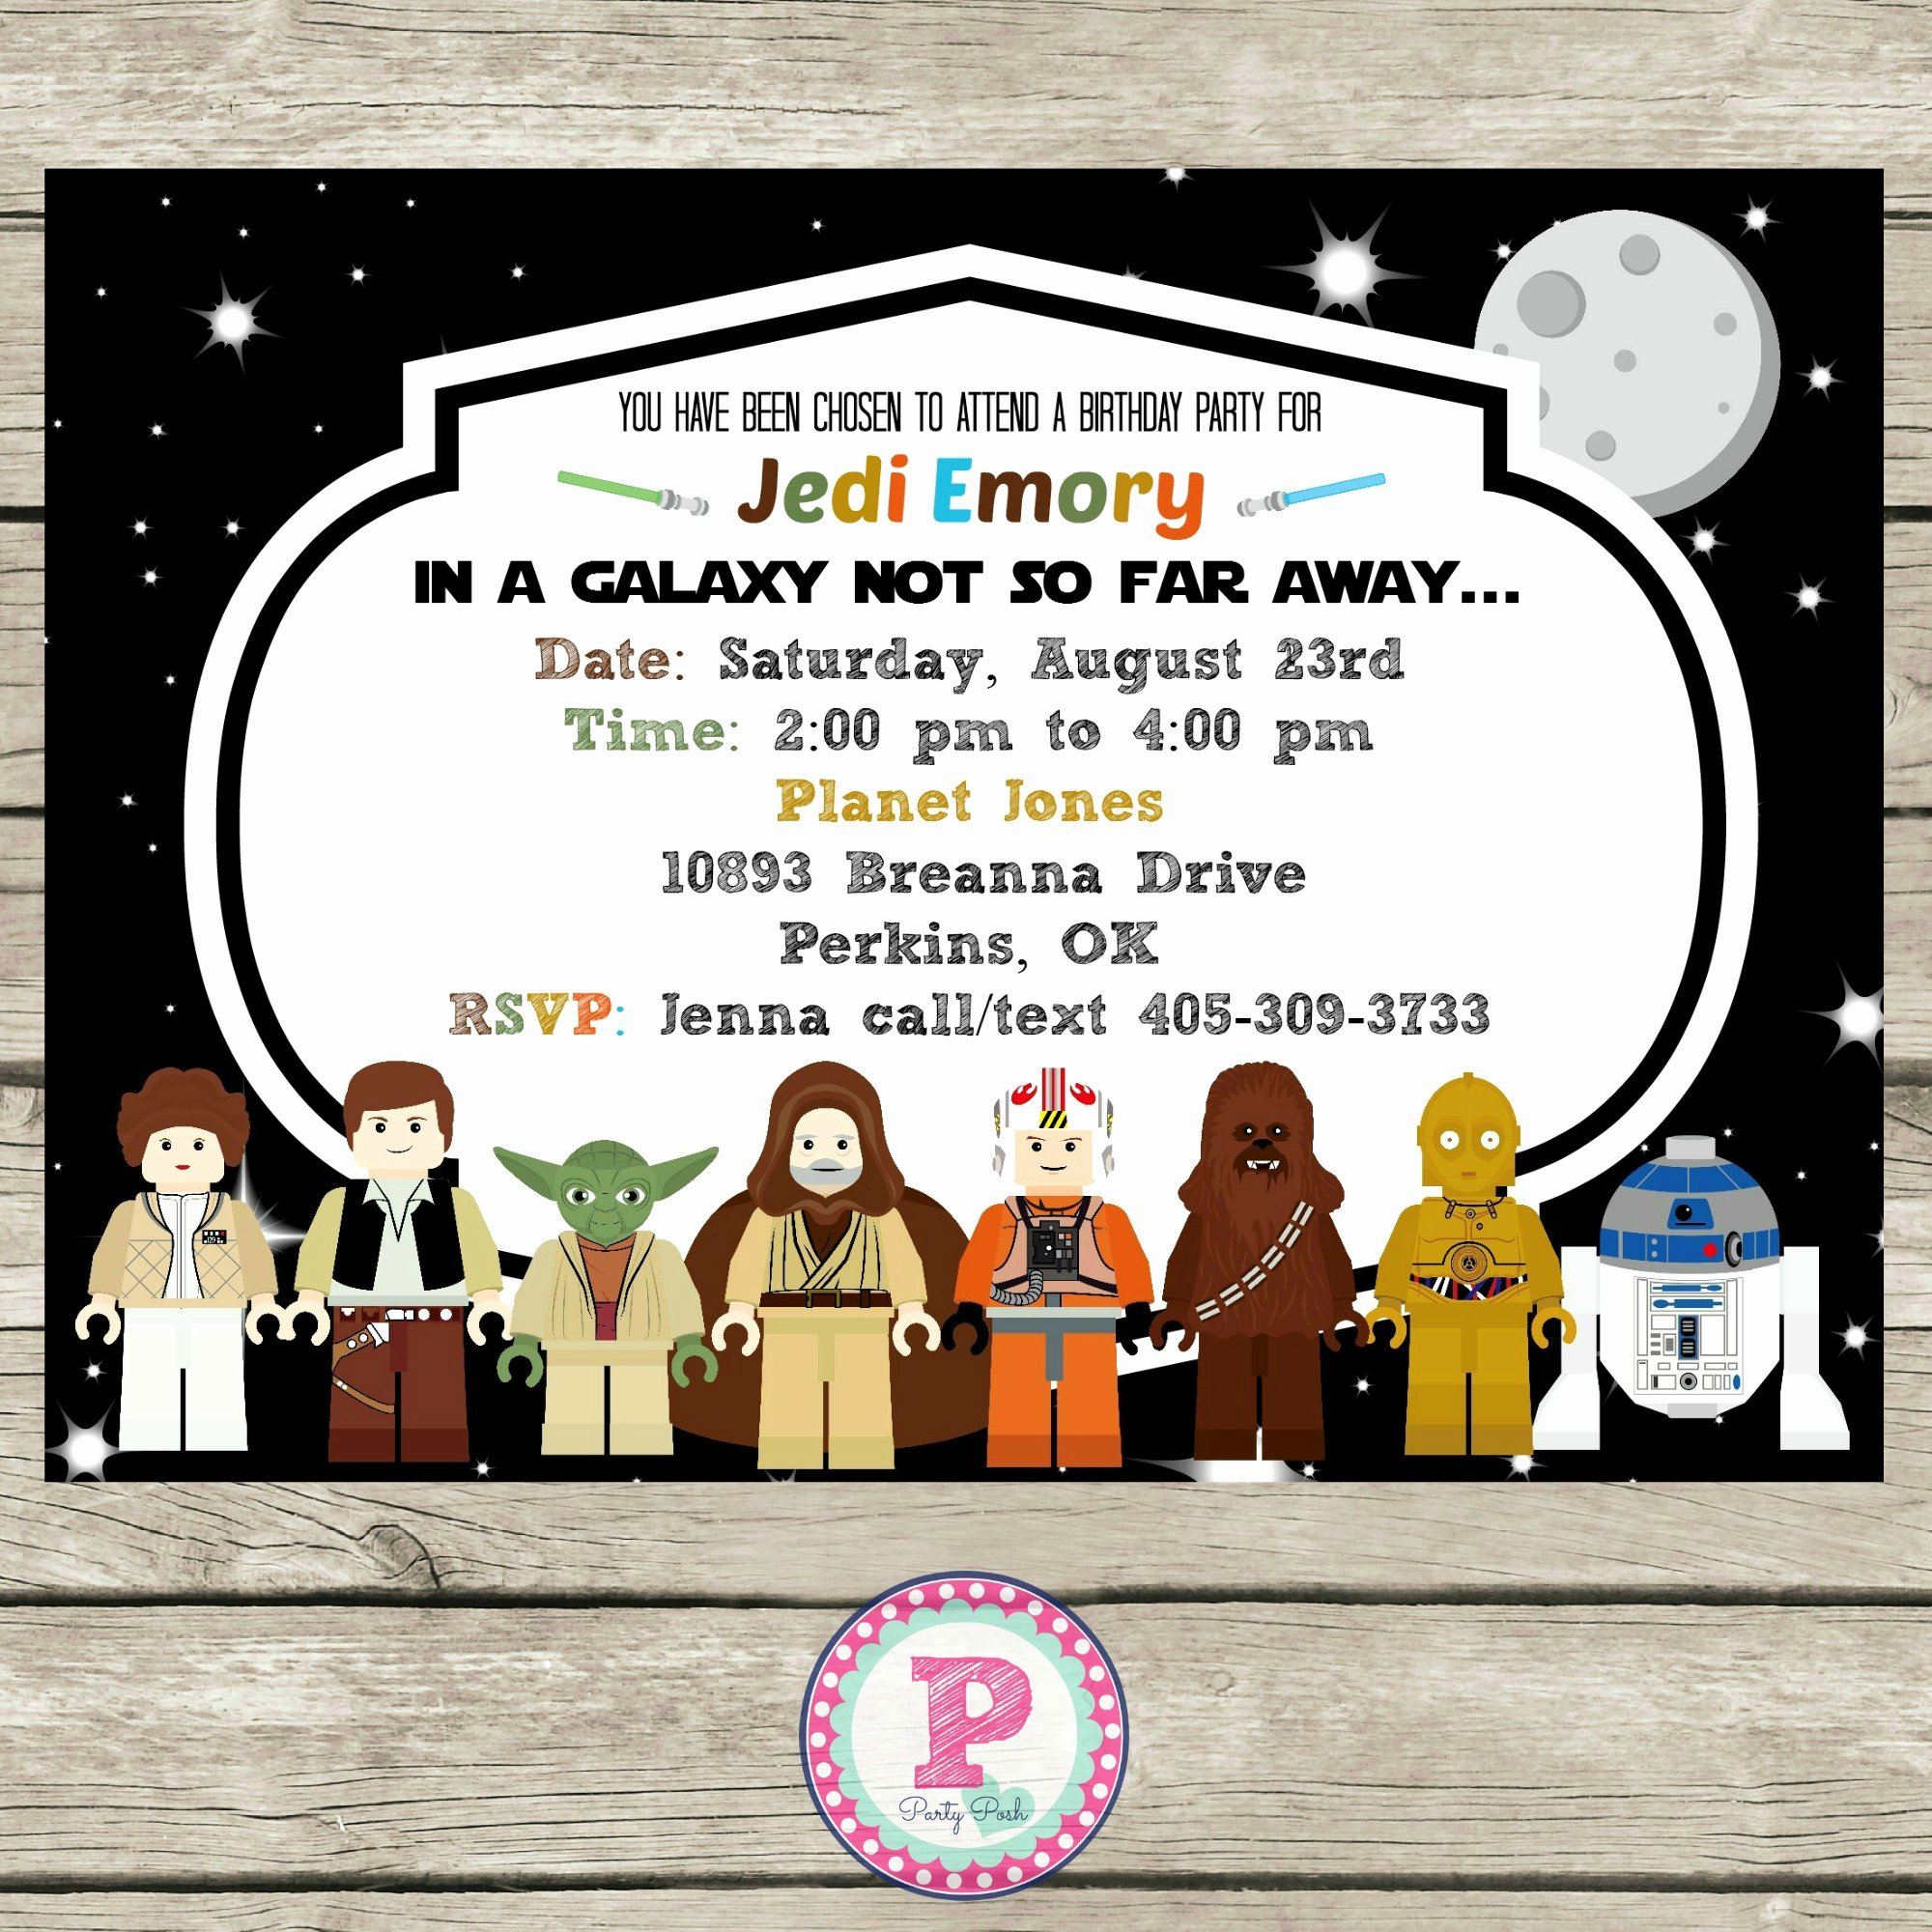 Lego Star Wars Party Invites Fresh Star Wars Lego Birthday Party Ideas Invitations